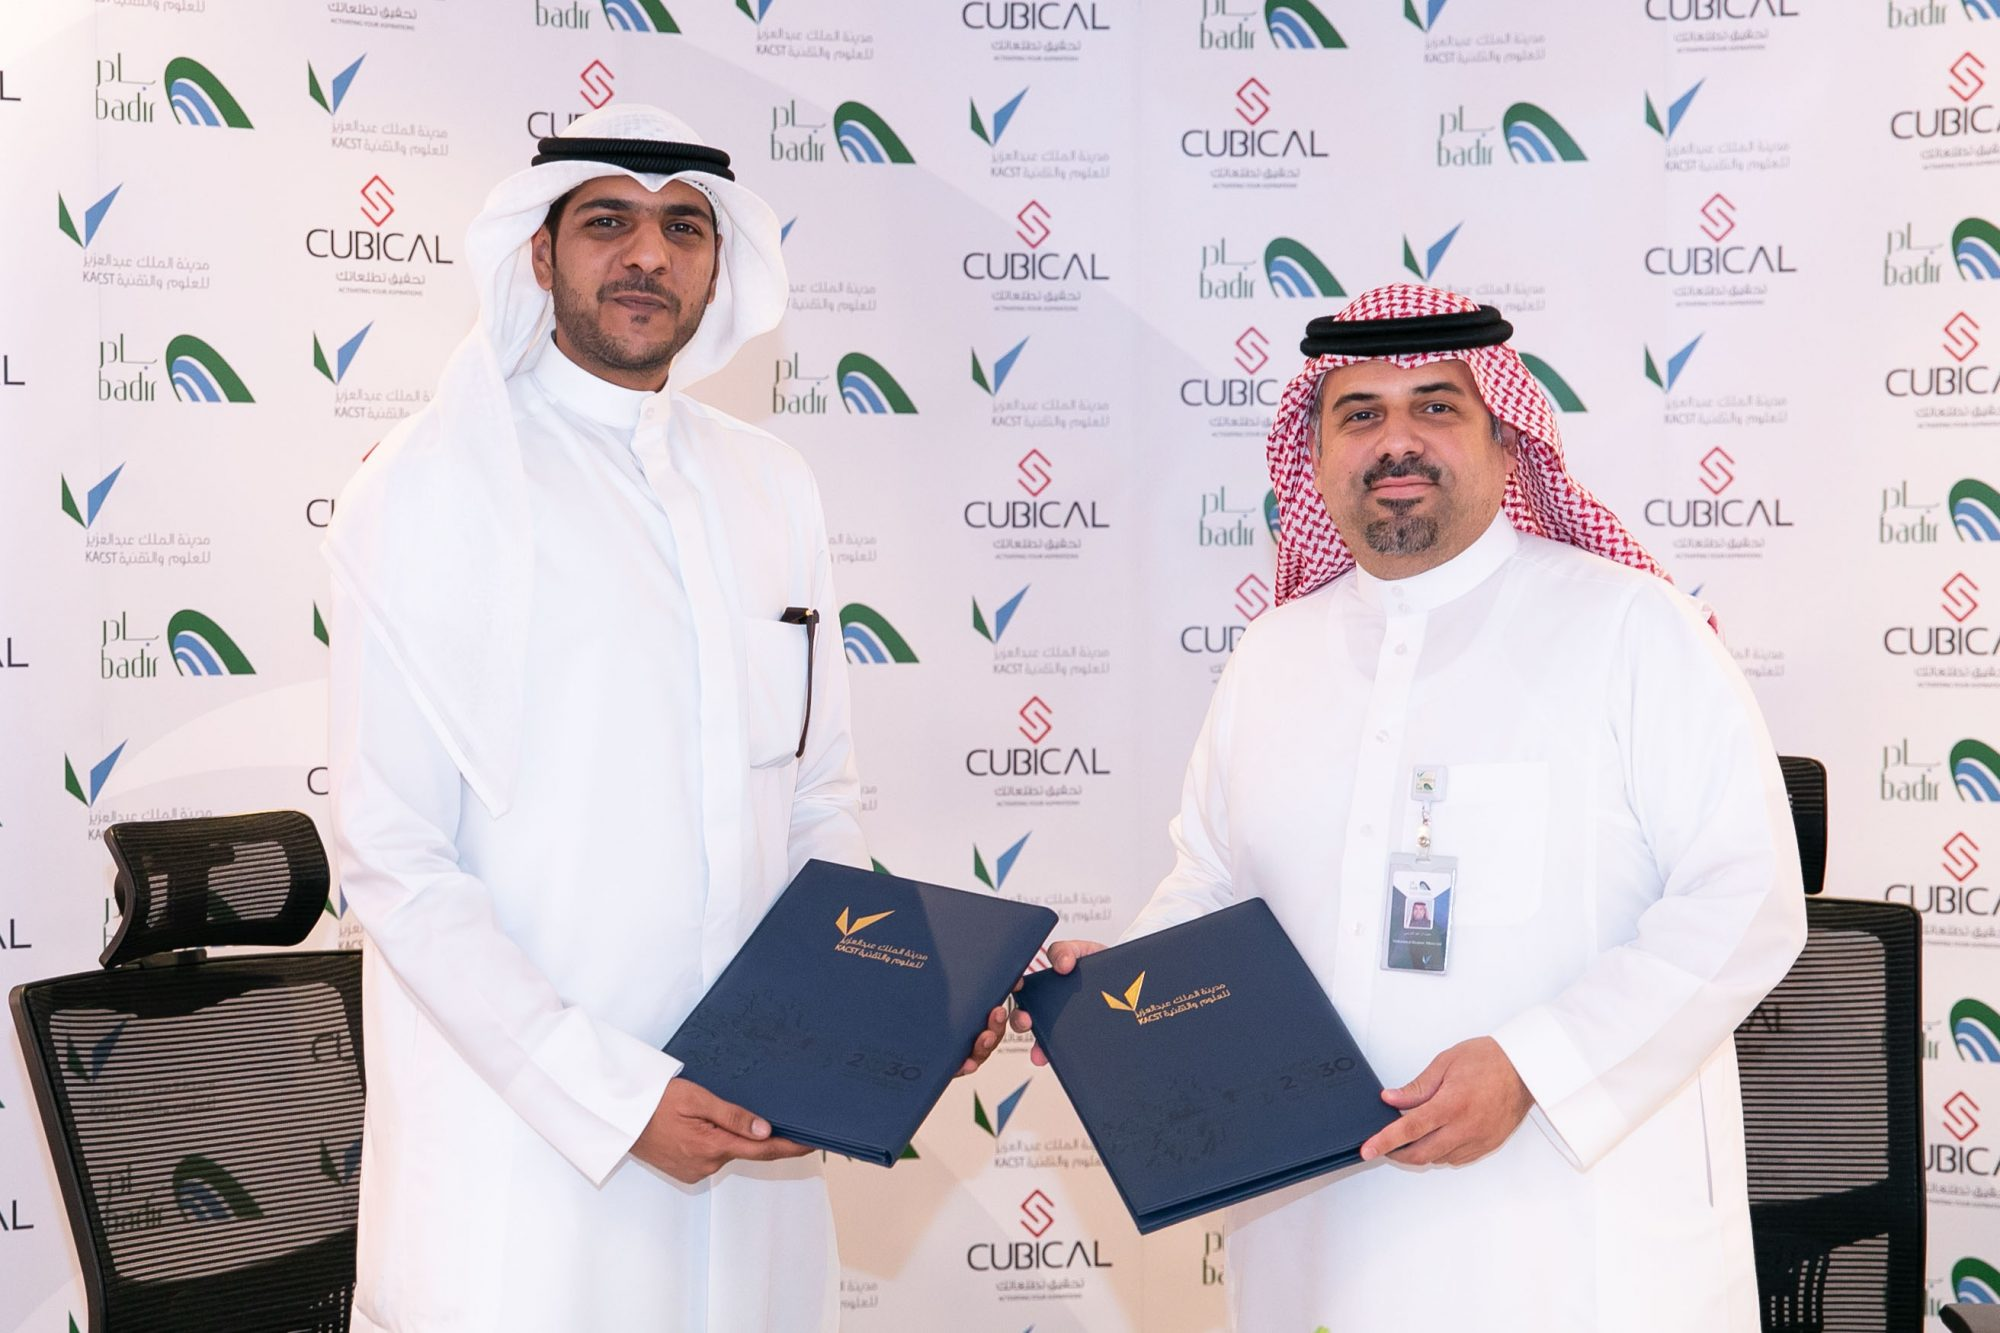 Badir Program and Cubical Services collaborate to boost ties between startups in Saudi & Kuwait